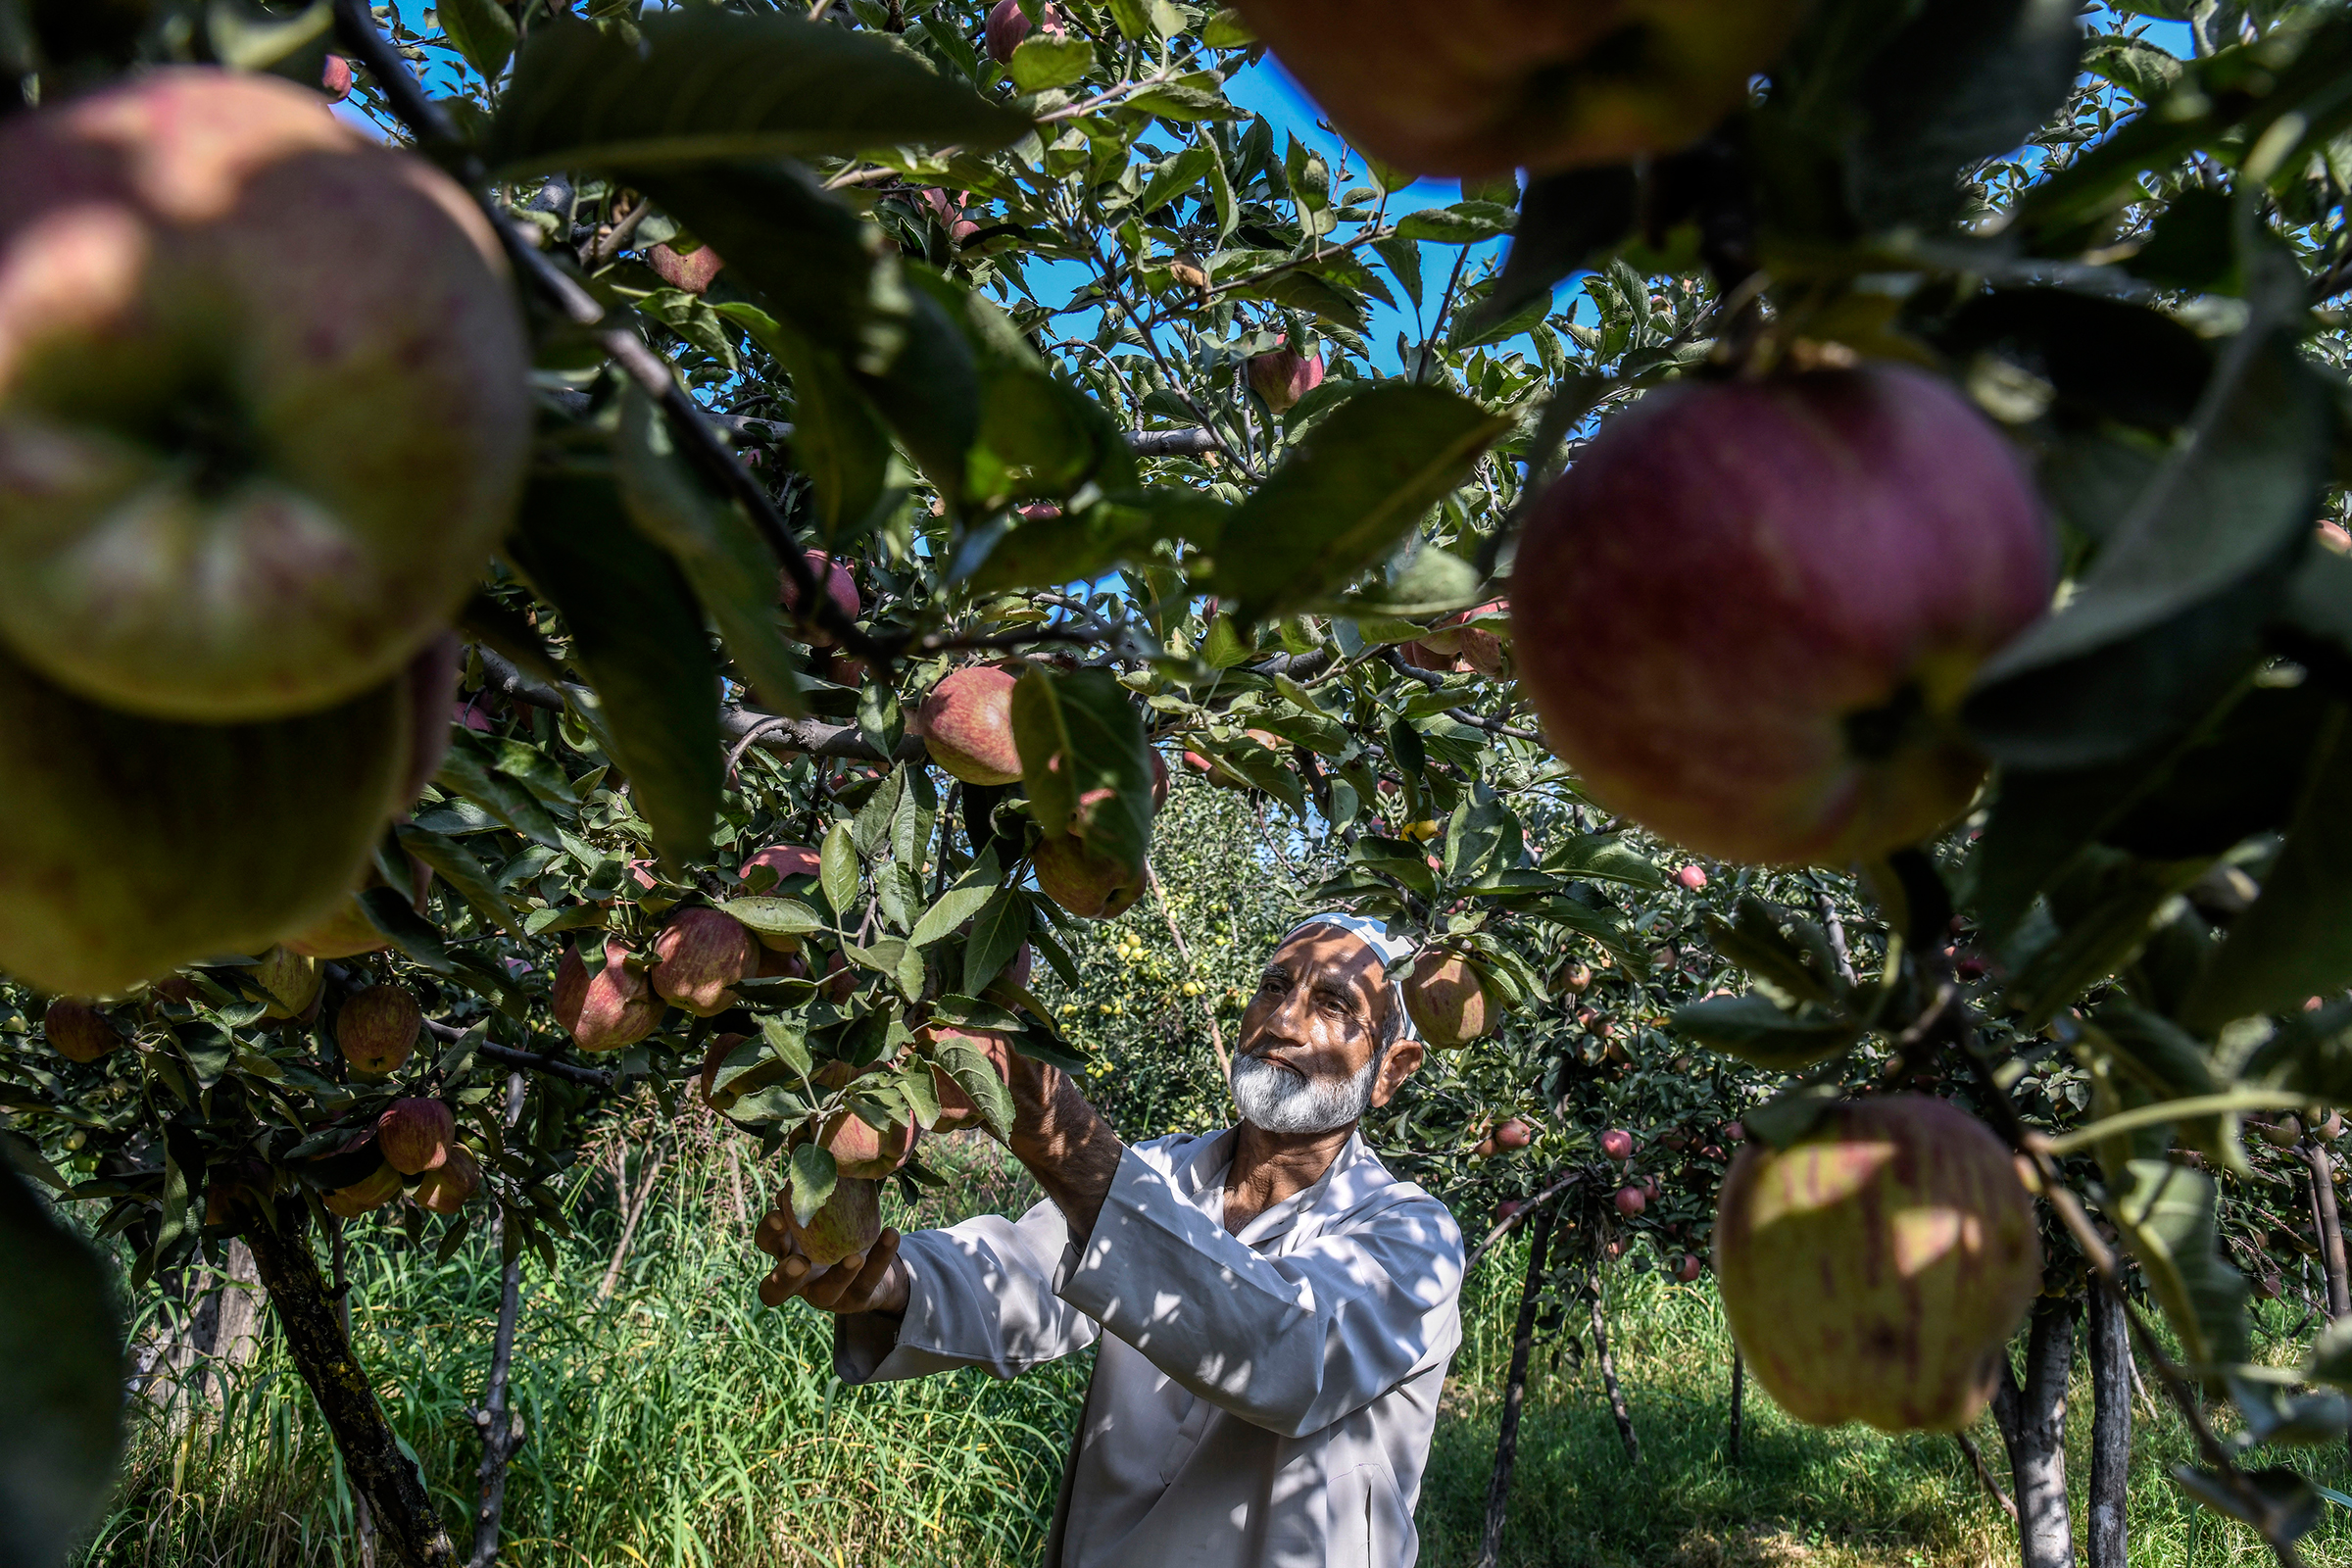 Gh Mohiuddin Mir, 65, who worries that if the Kashmir crisis is not resolved by harvest time he will be financially devastated, at his apple farm in Budgam, India, on Sept. 19, 2019.